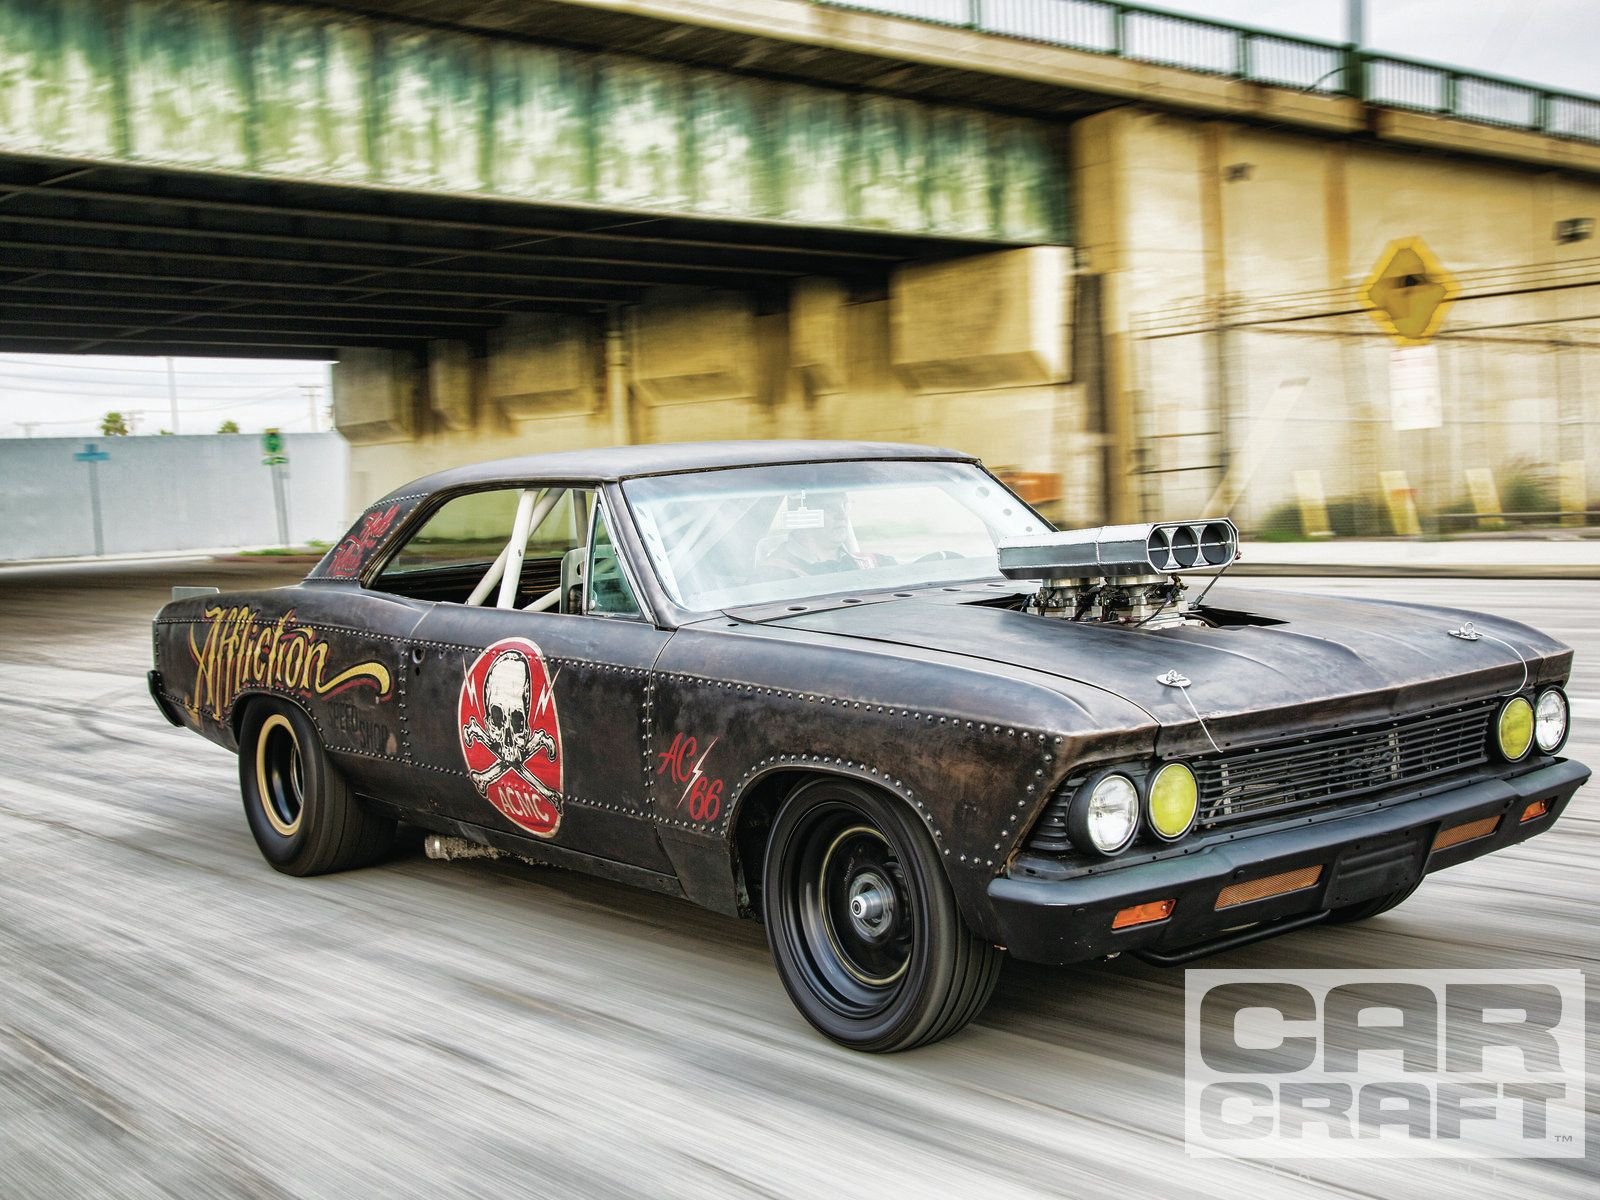 Chevrolet Chevelle The Affliction Chevelle The